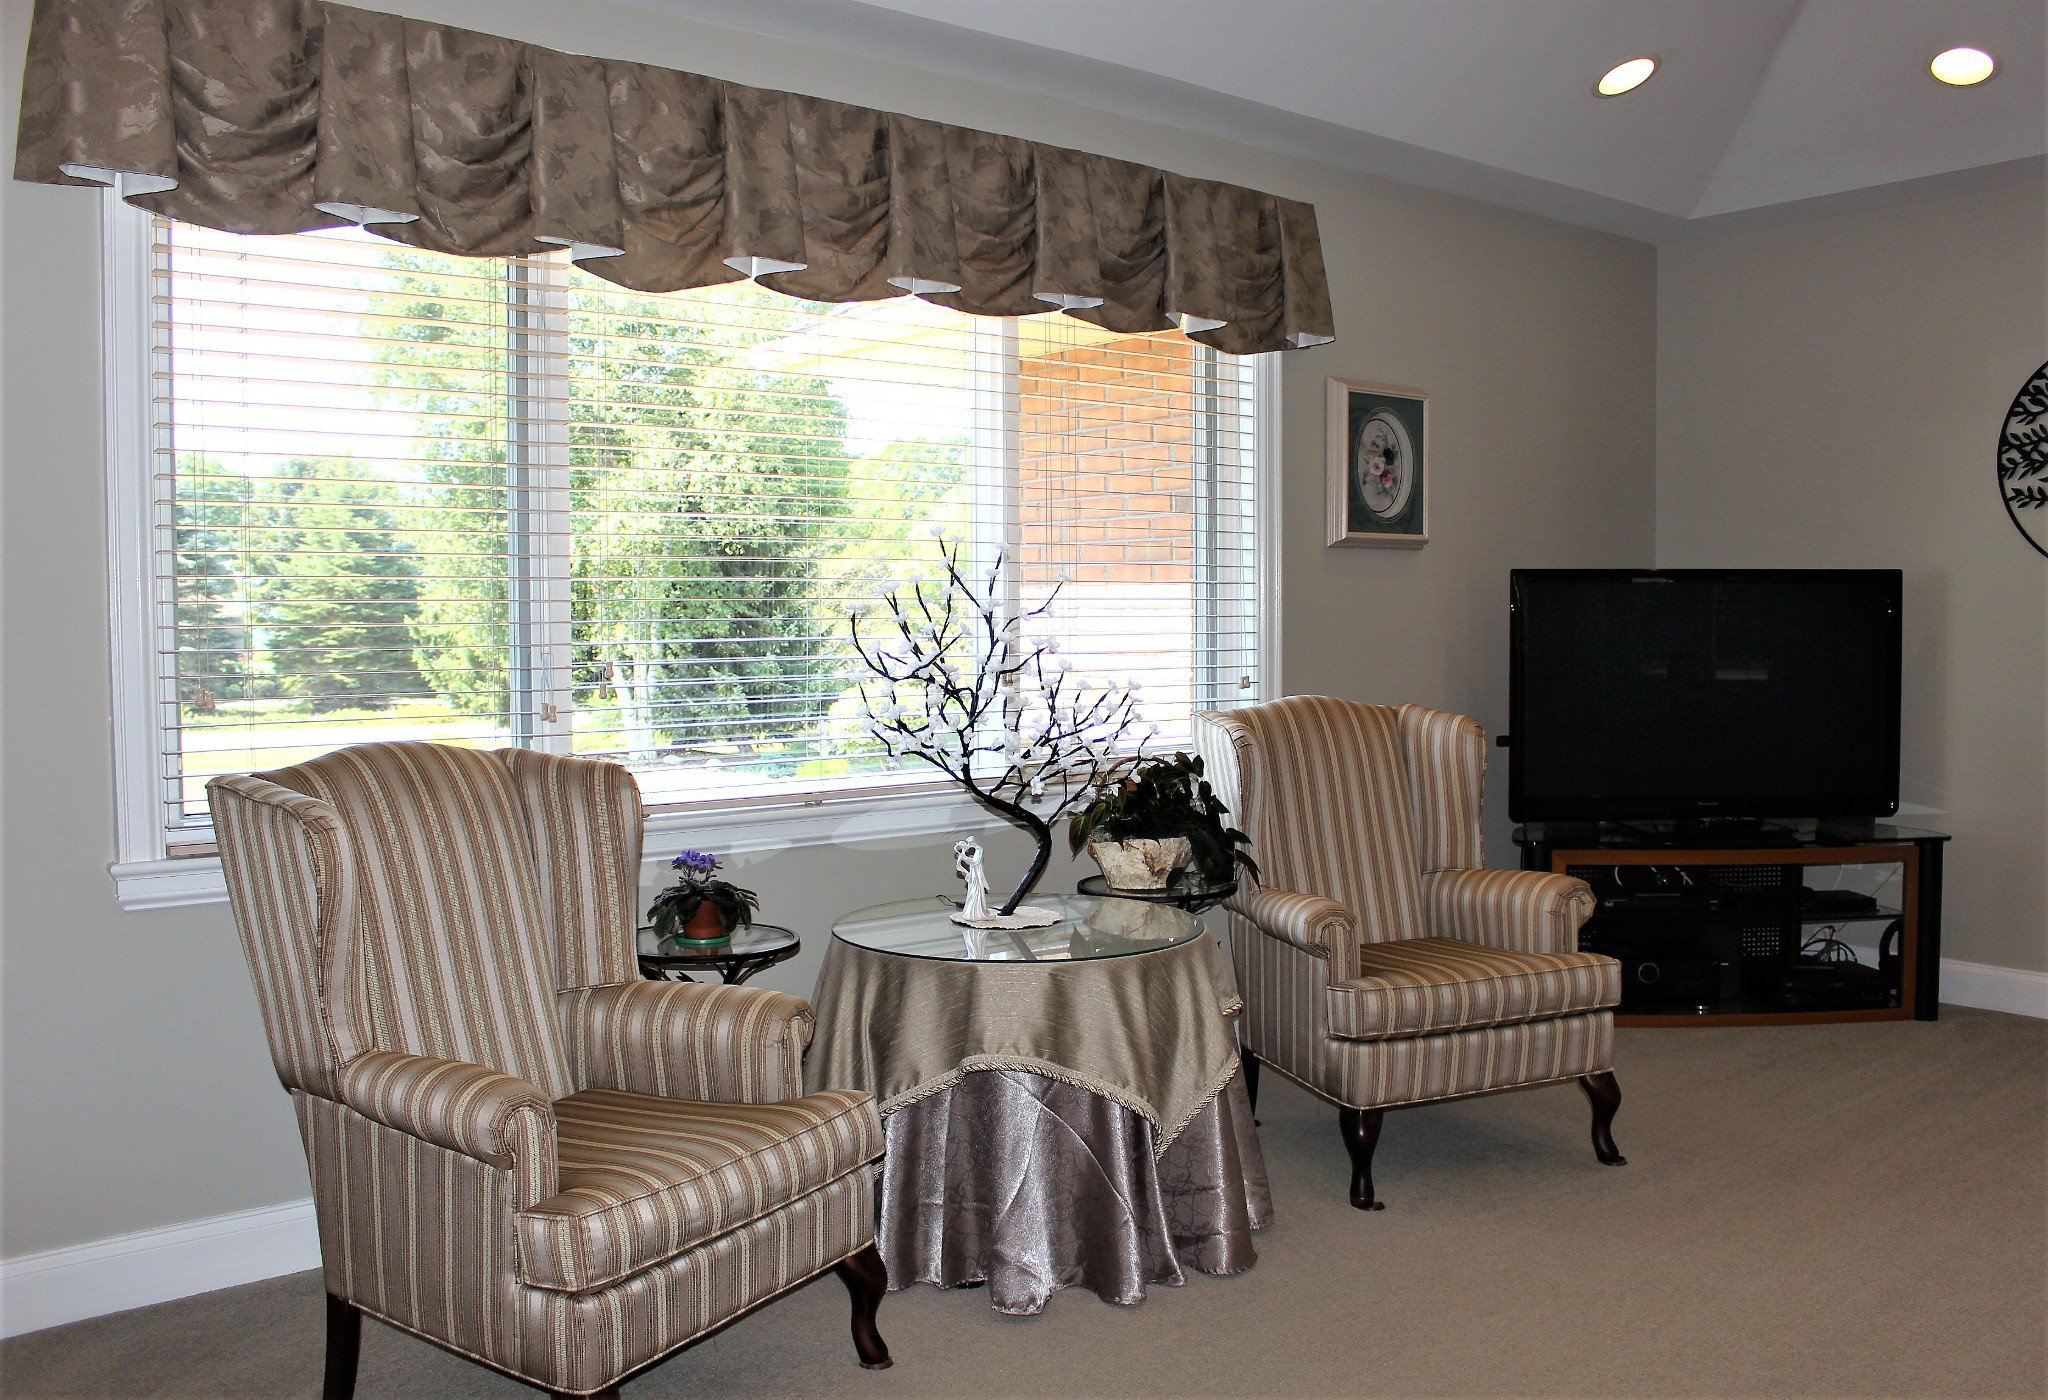 Photo 7: Photos: 159 Nawautin Drive in Grafton: Residential Detached for sale : MLS®# 40012652